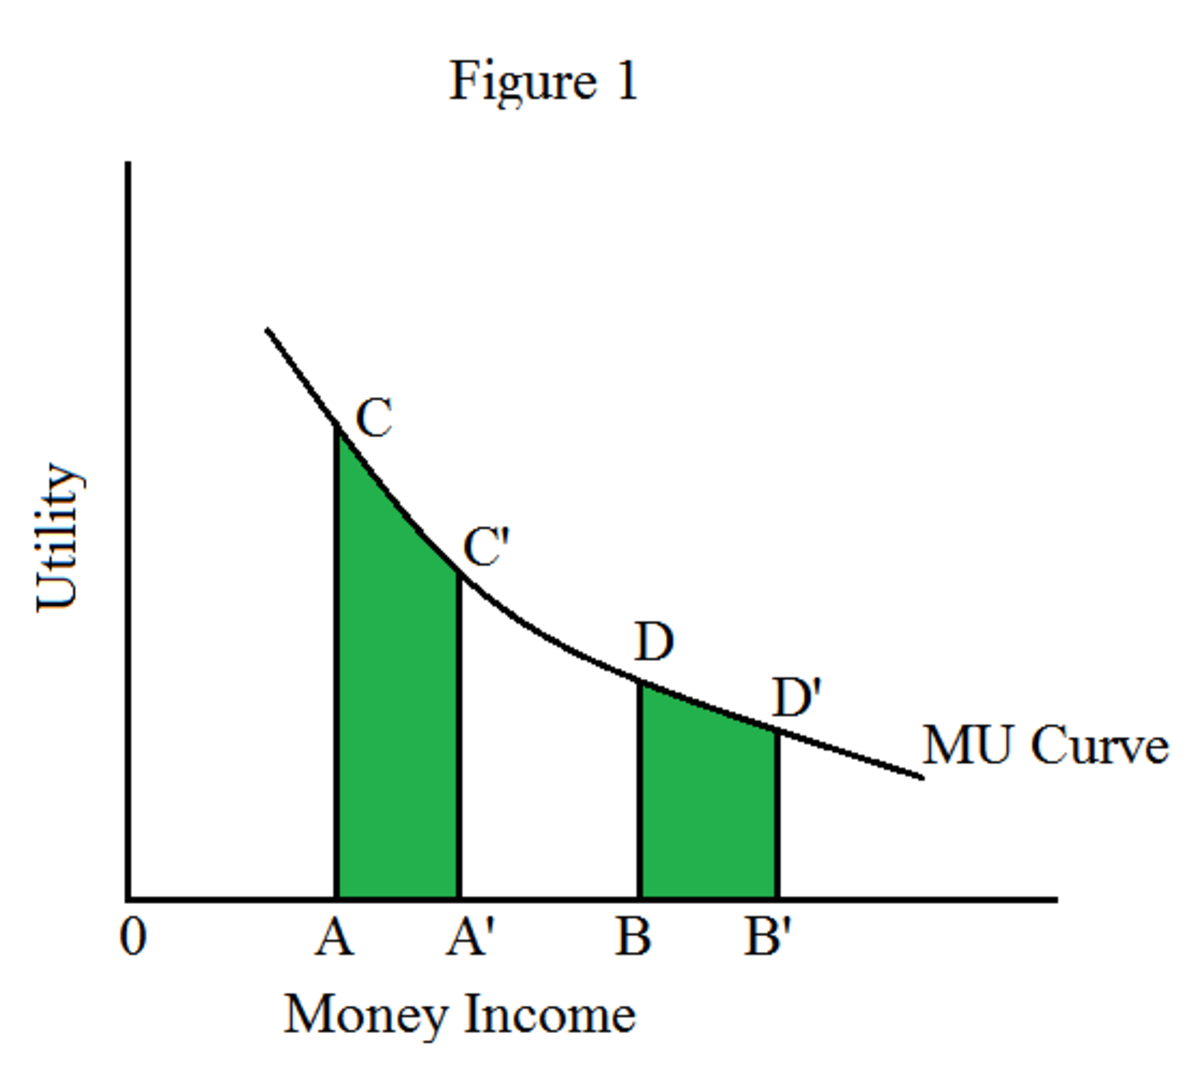 advantages-of-the-law-of-diminishing-marginal-utility